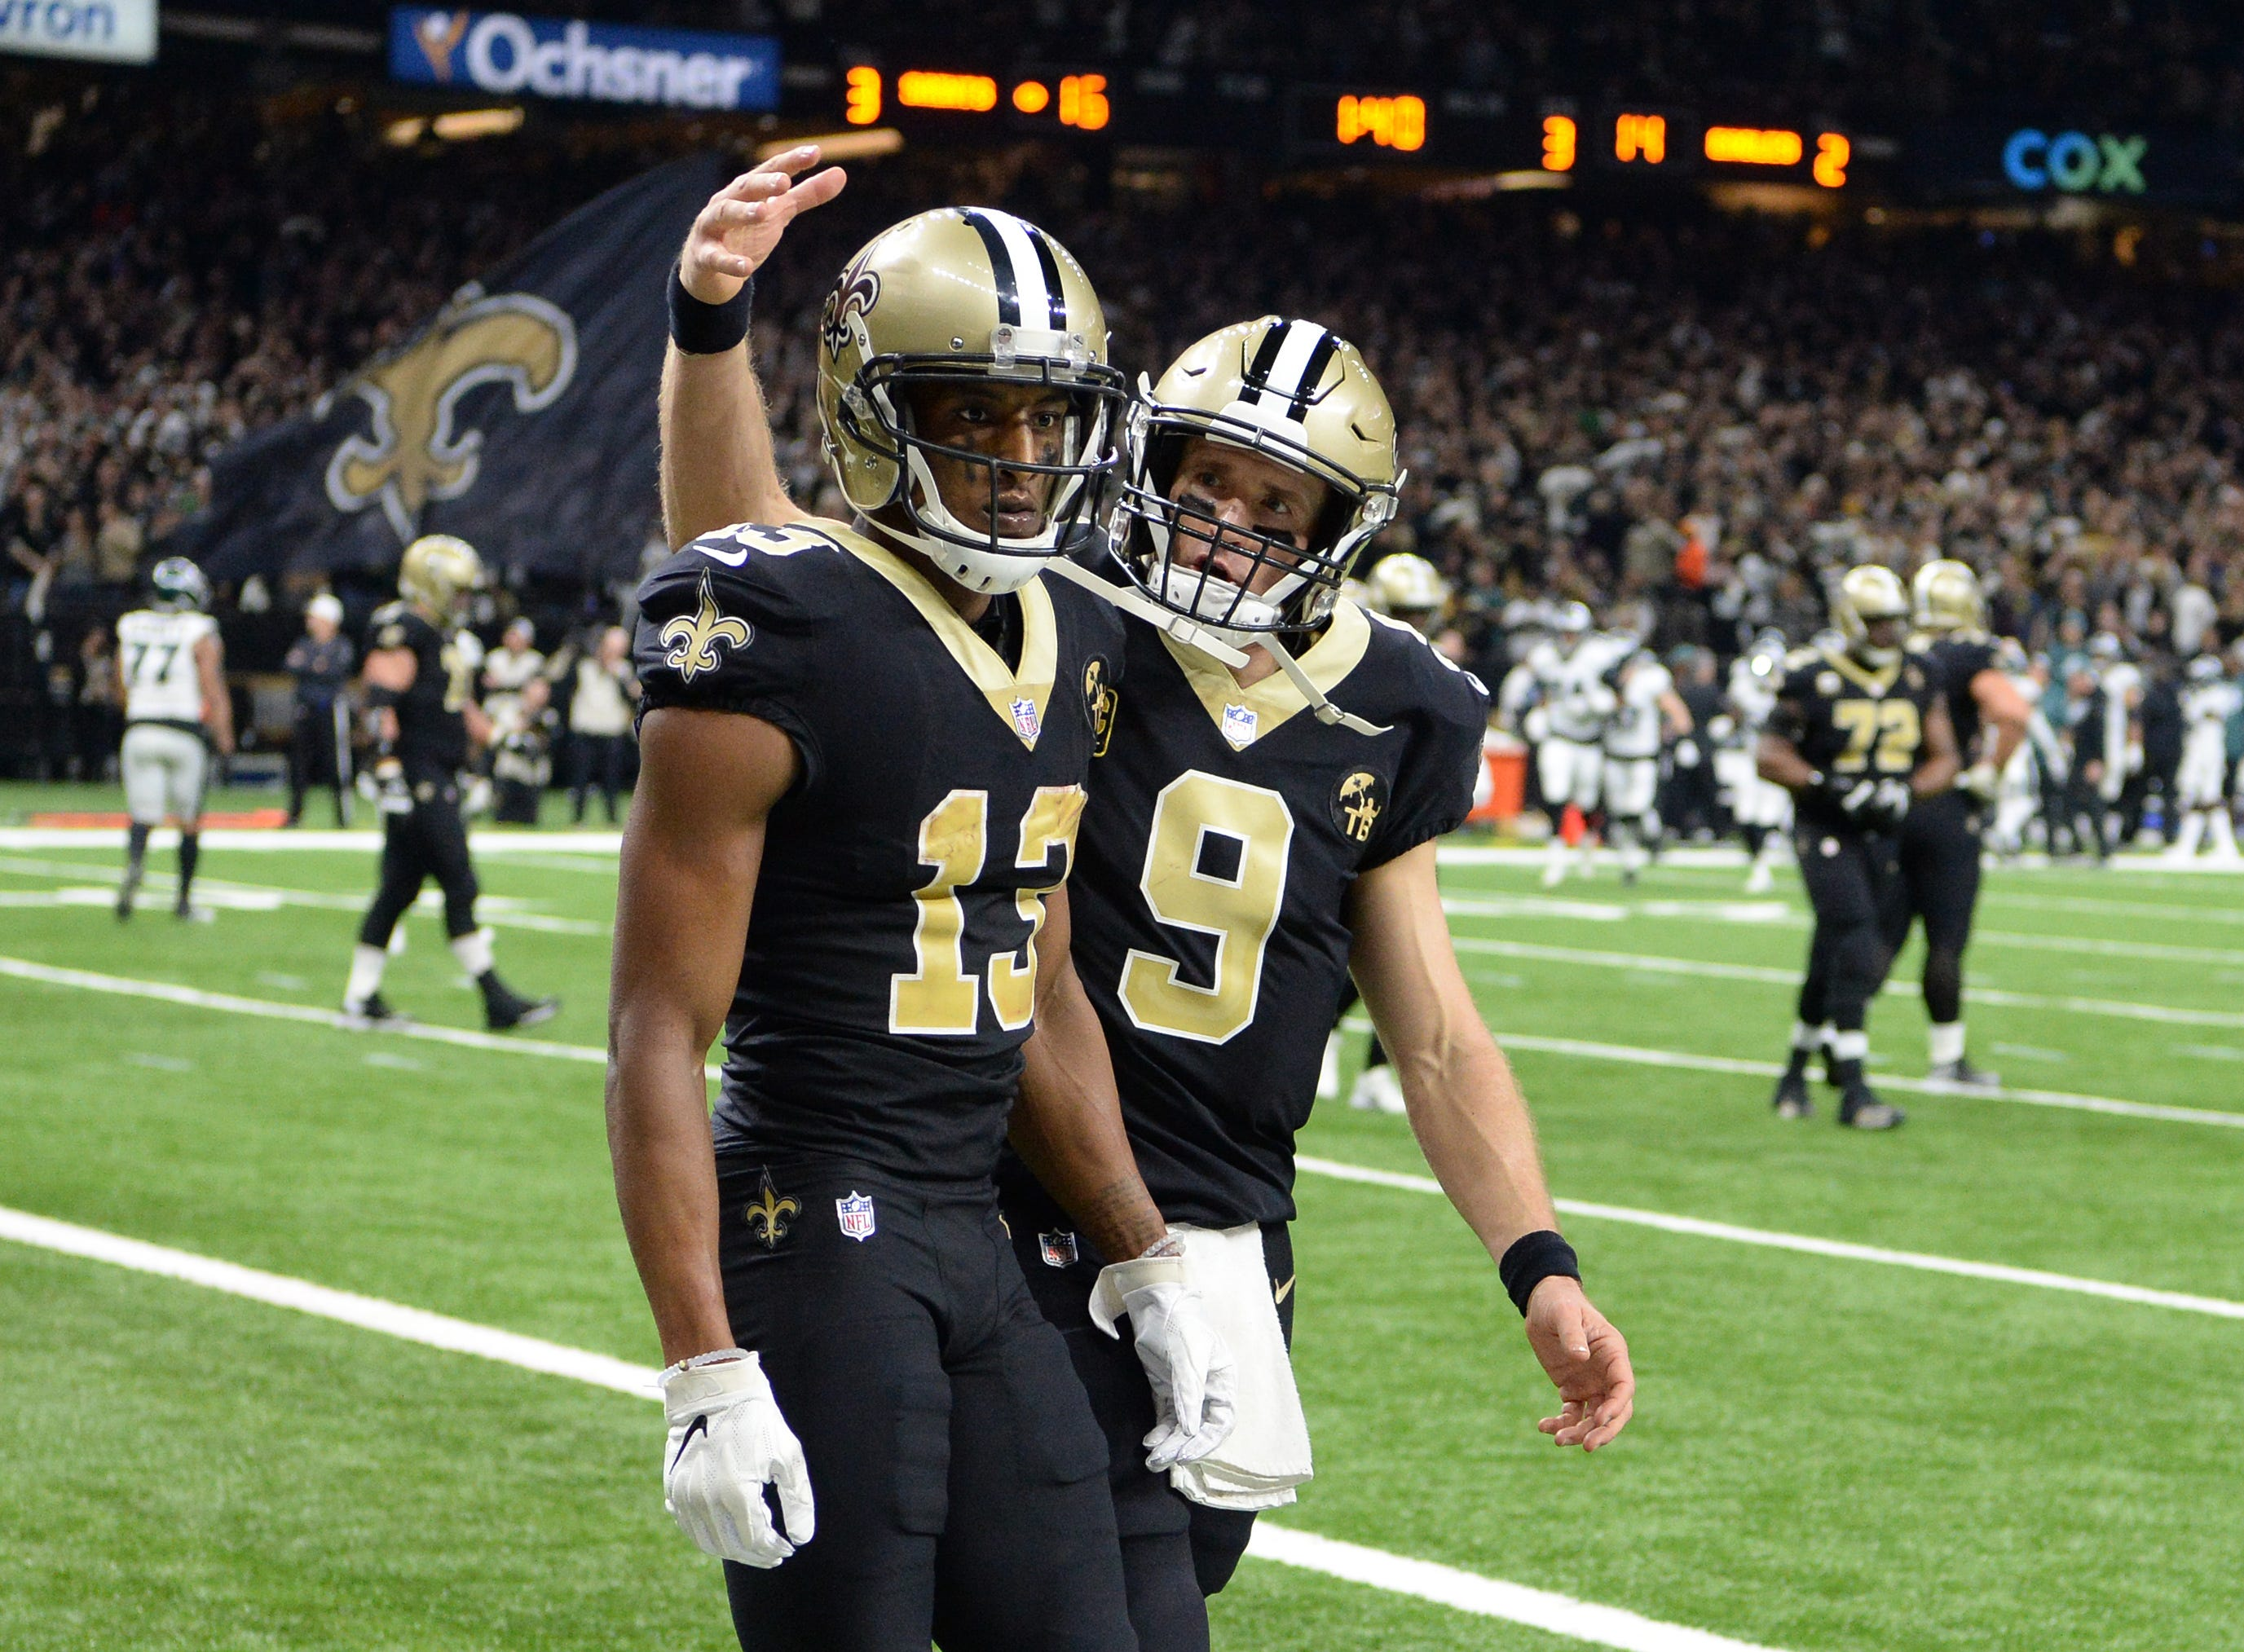 'Man, I'll take over this drive': How WR Michael Thomas stepped up in Saints' moment of need vs. Eagles